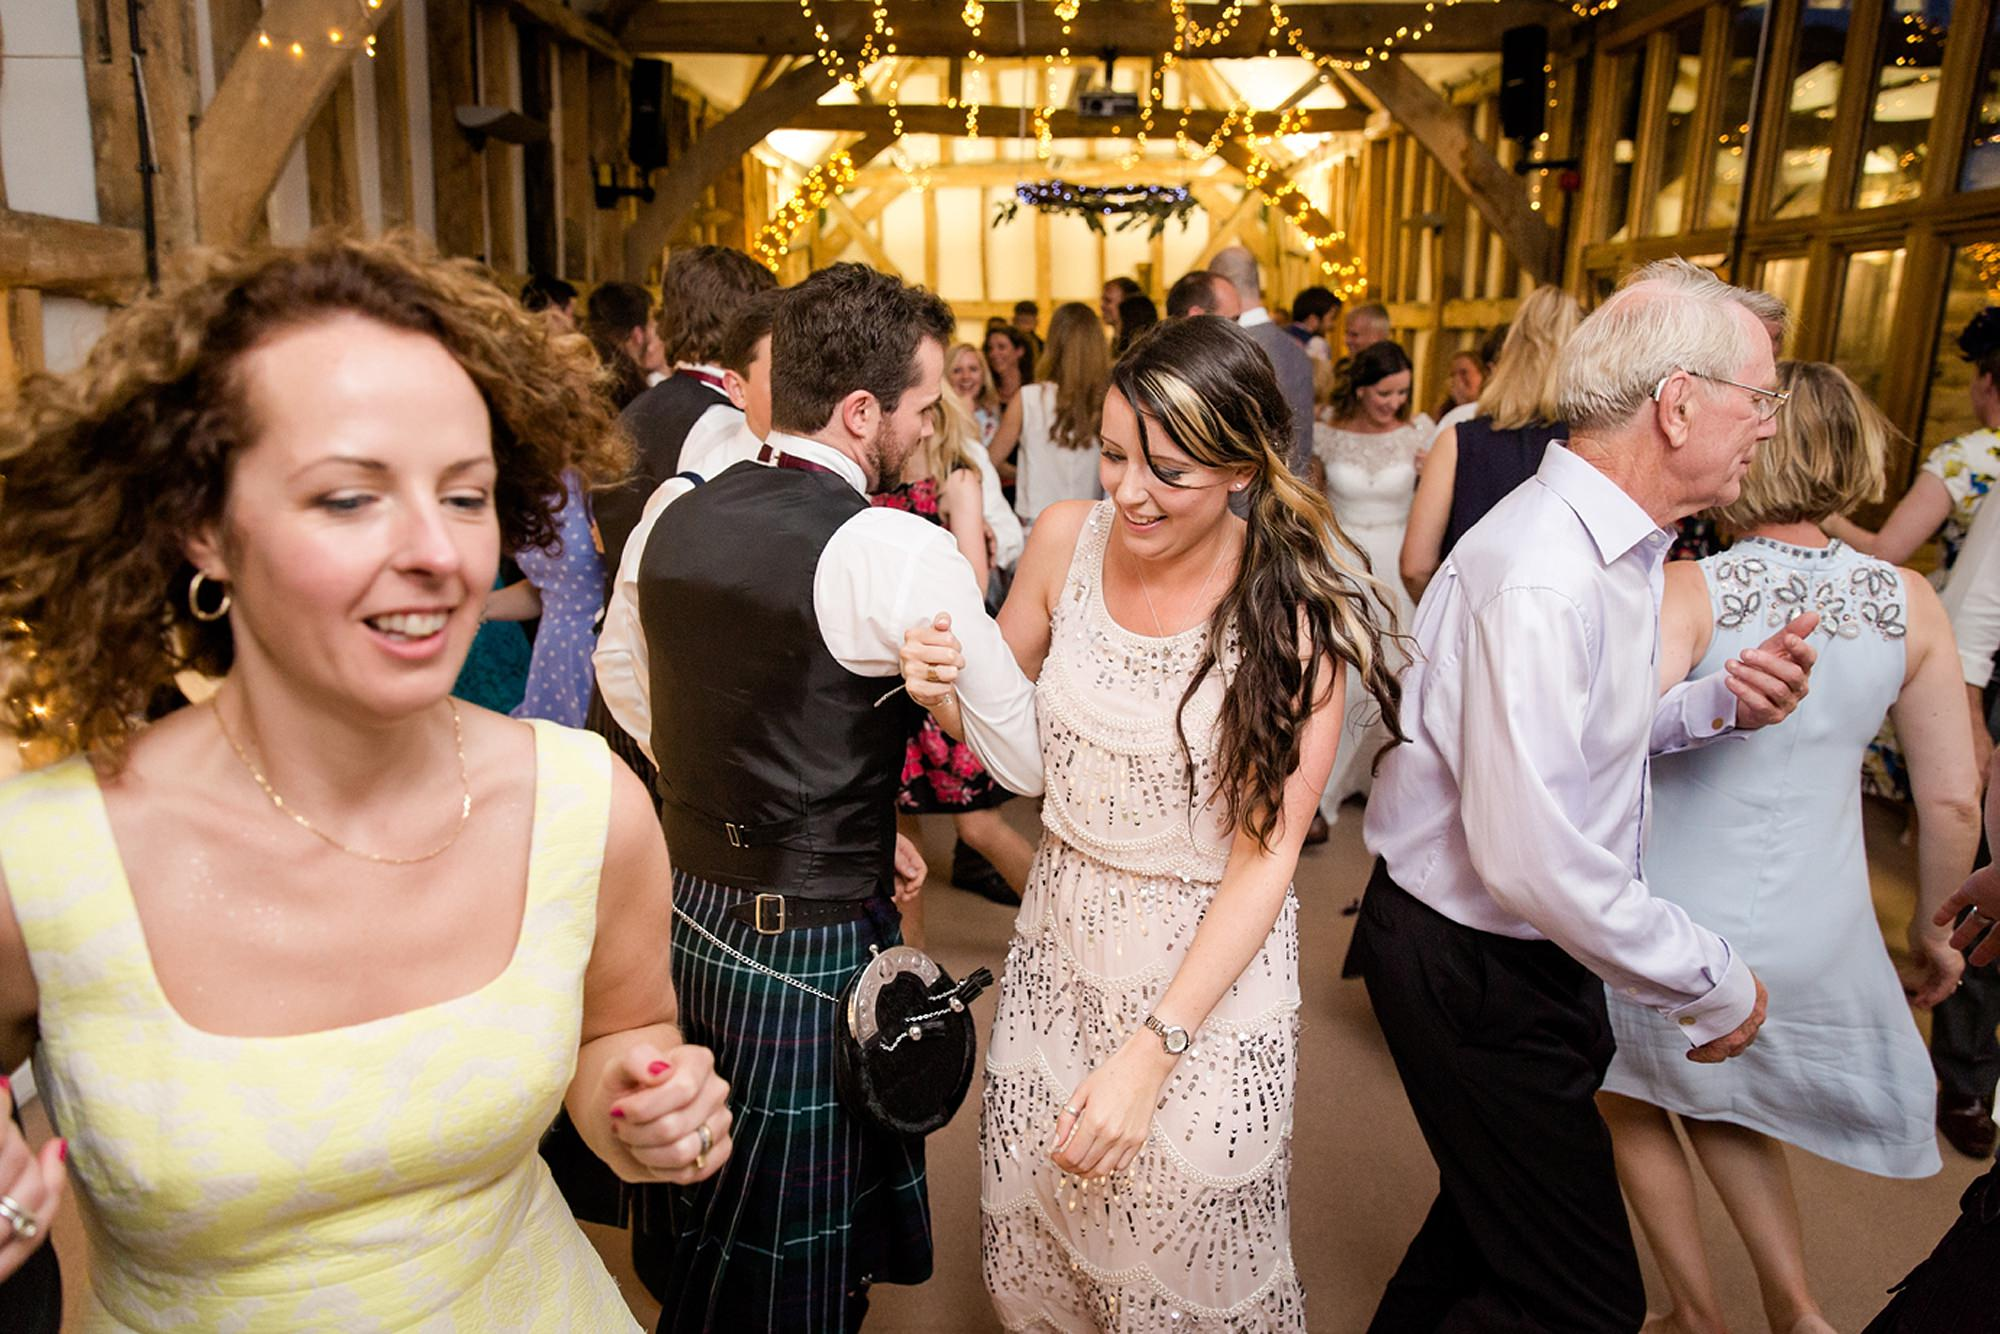 Outdoor humanist wedding photography guest ceilidh dancing